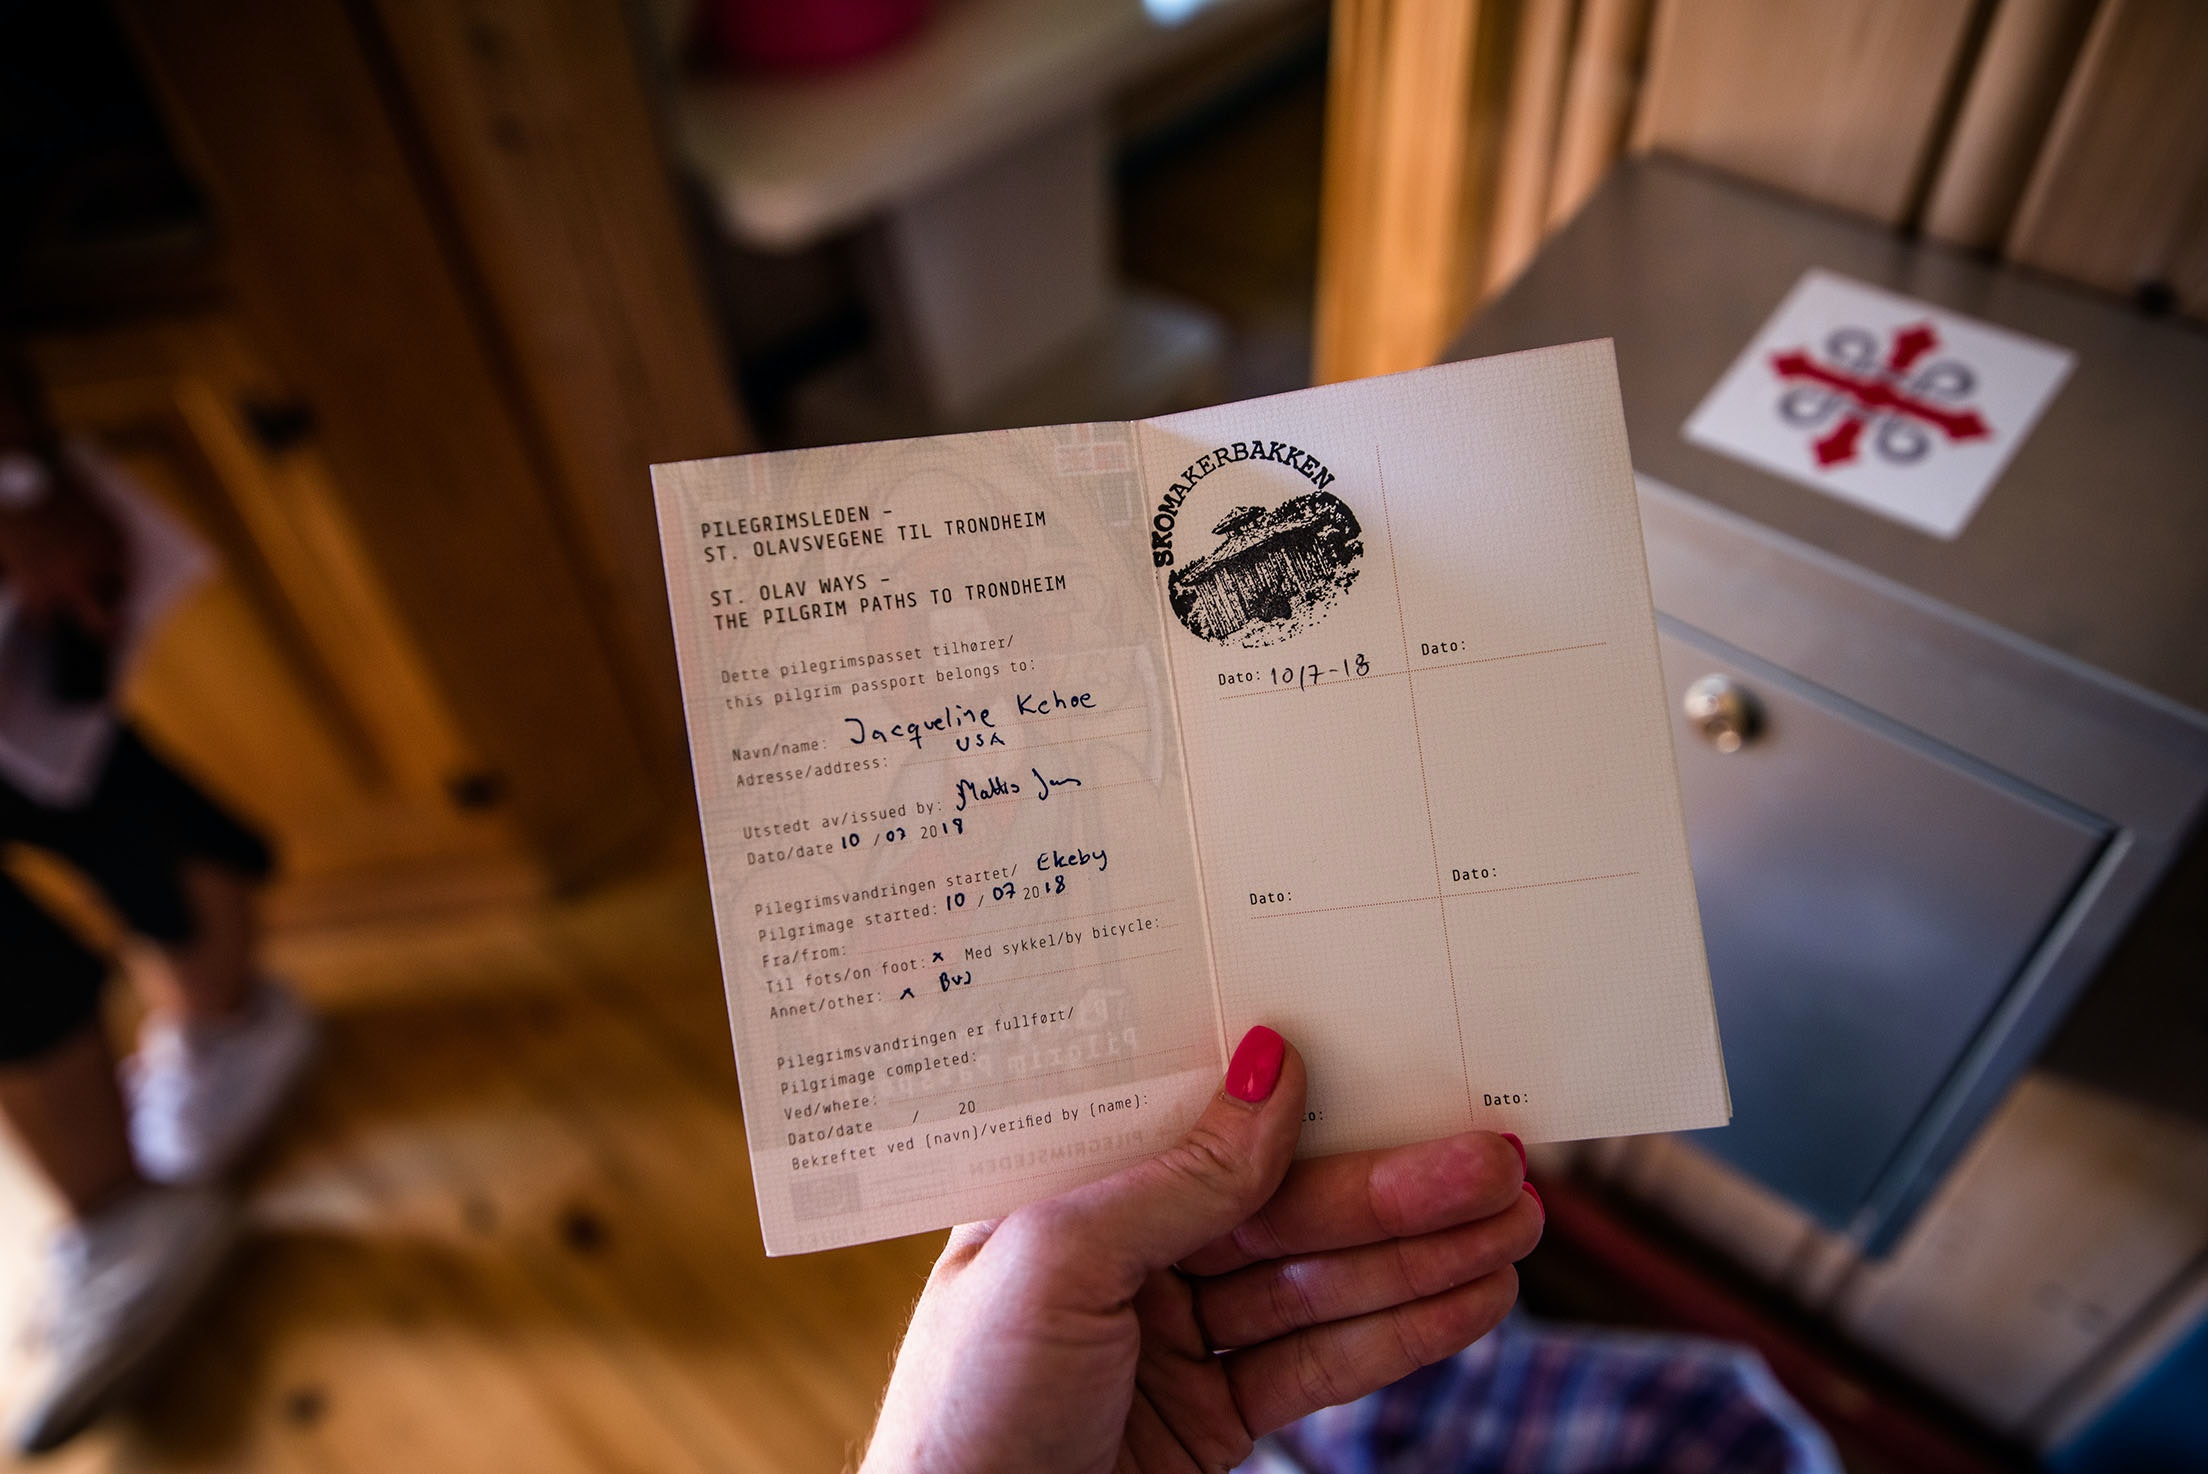 Registered trekkers receive a passport in which to document their progress.